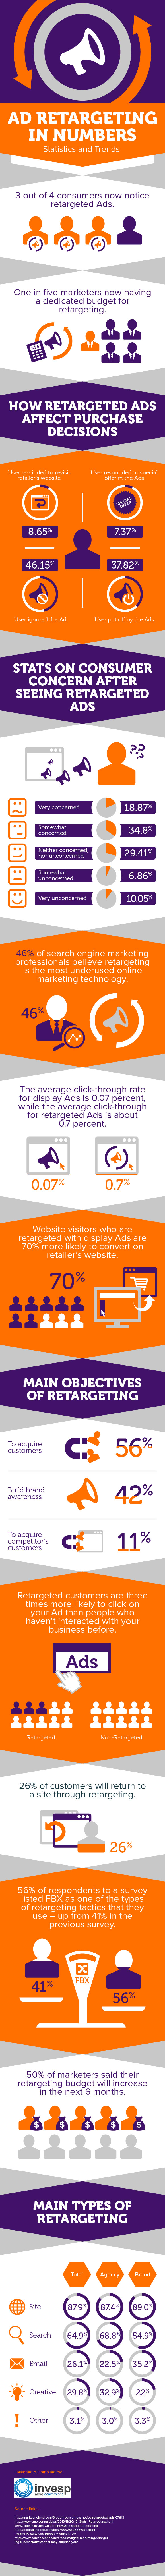 Ad Retargeting in Numbers  - Statistics and Trends